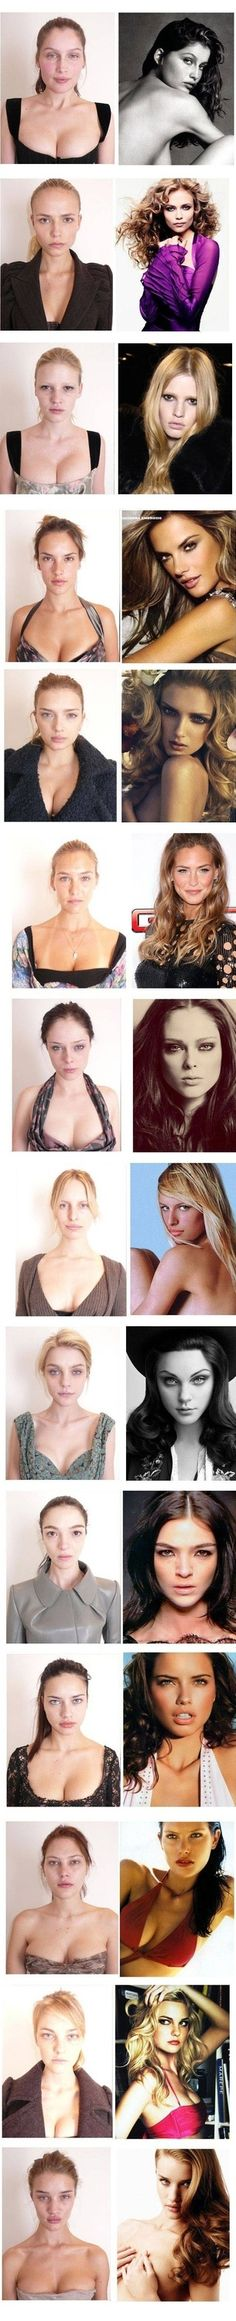 Hahaha and that's the reality! Models sometimes need some makeup too lol!!! #models #no makeup